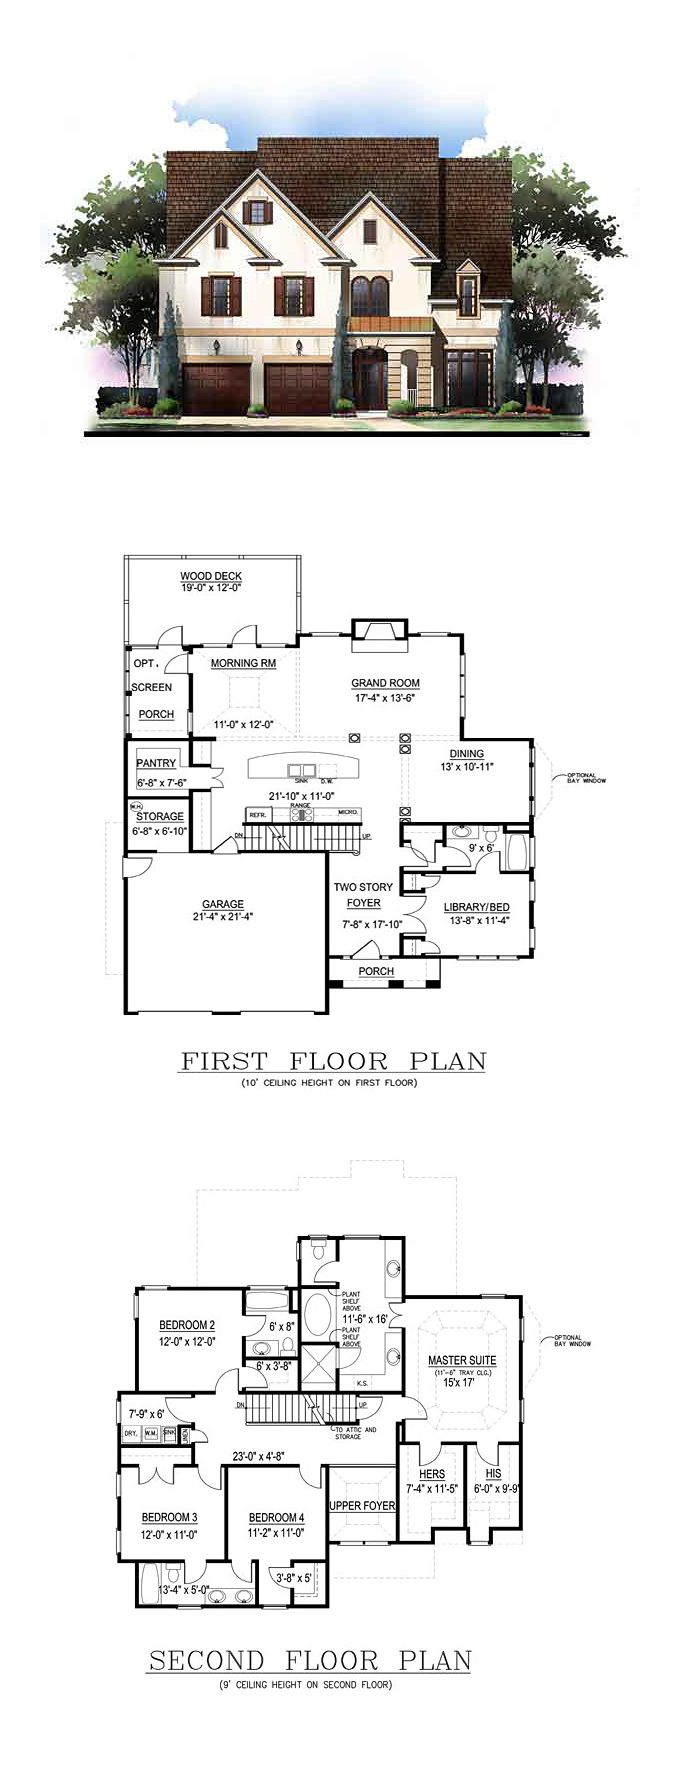 Traditional Style House Plan 72243 With 5 Bed 4 Bath 2 Car Garage Southern House Plans House Blueprints Dream House Plans